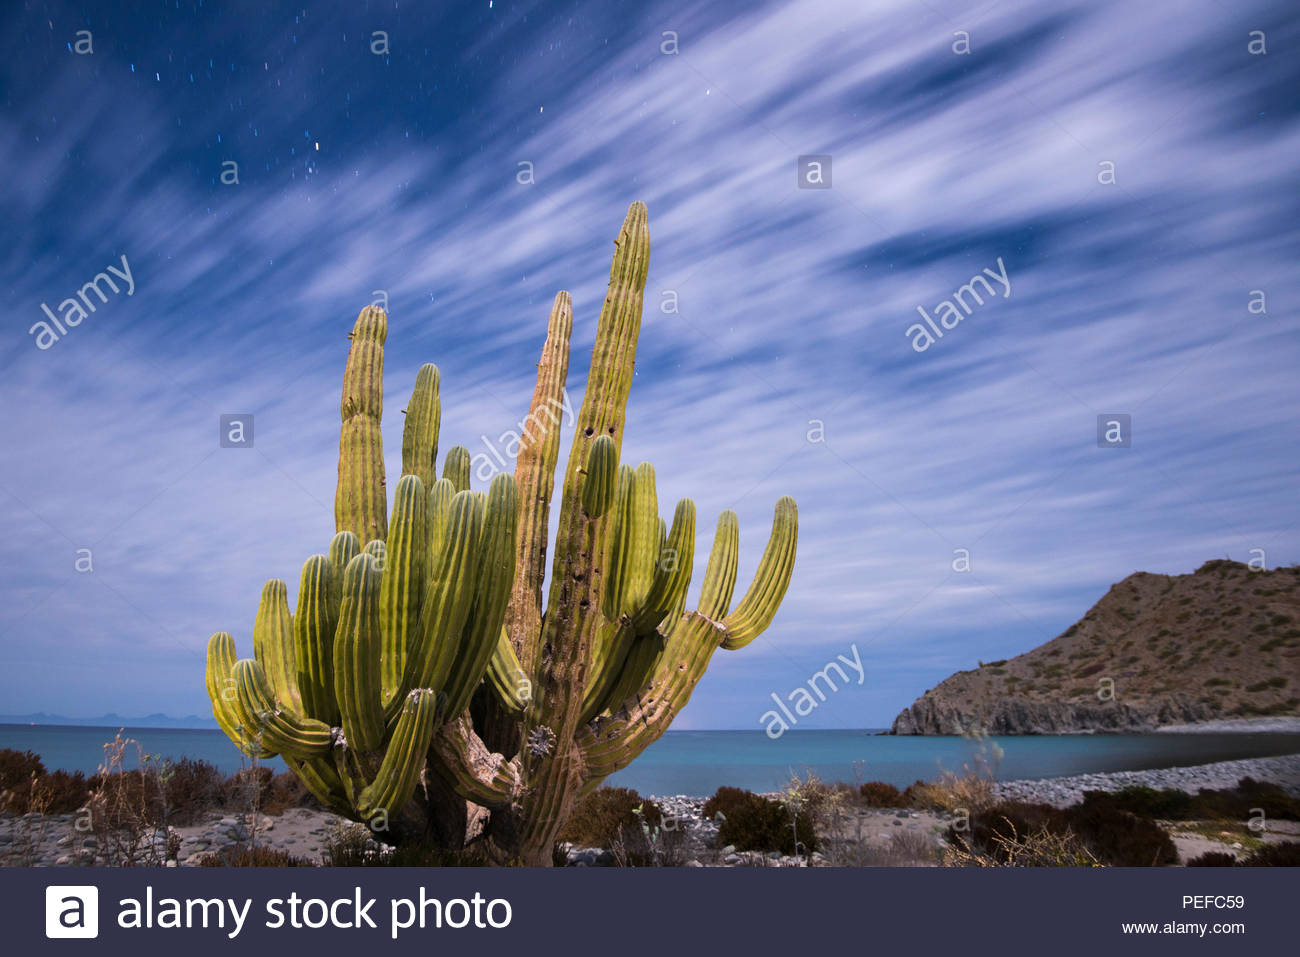 A cactus stands along the edge of the ocean. Stock Photo